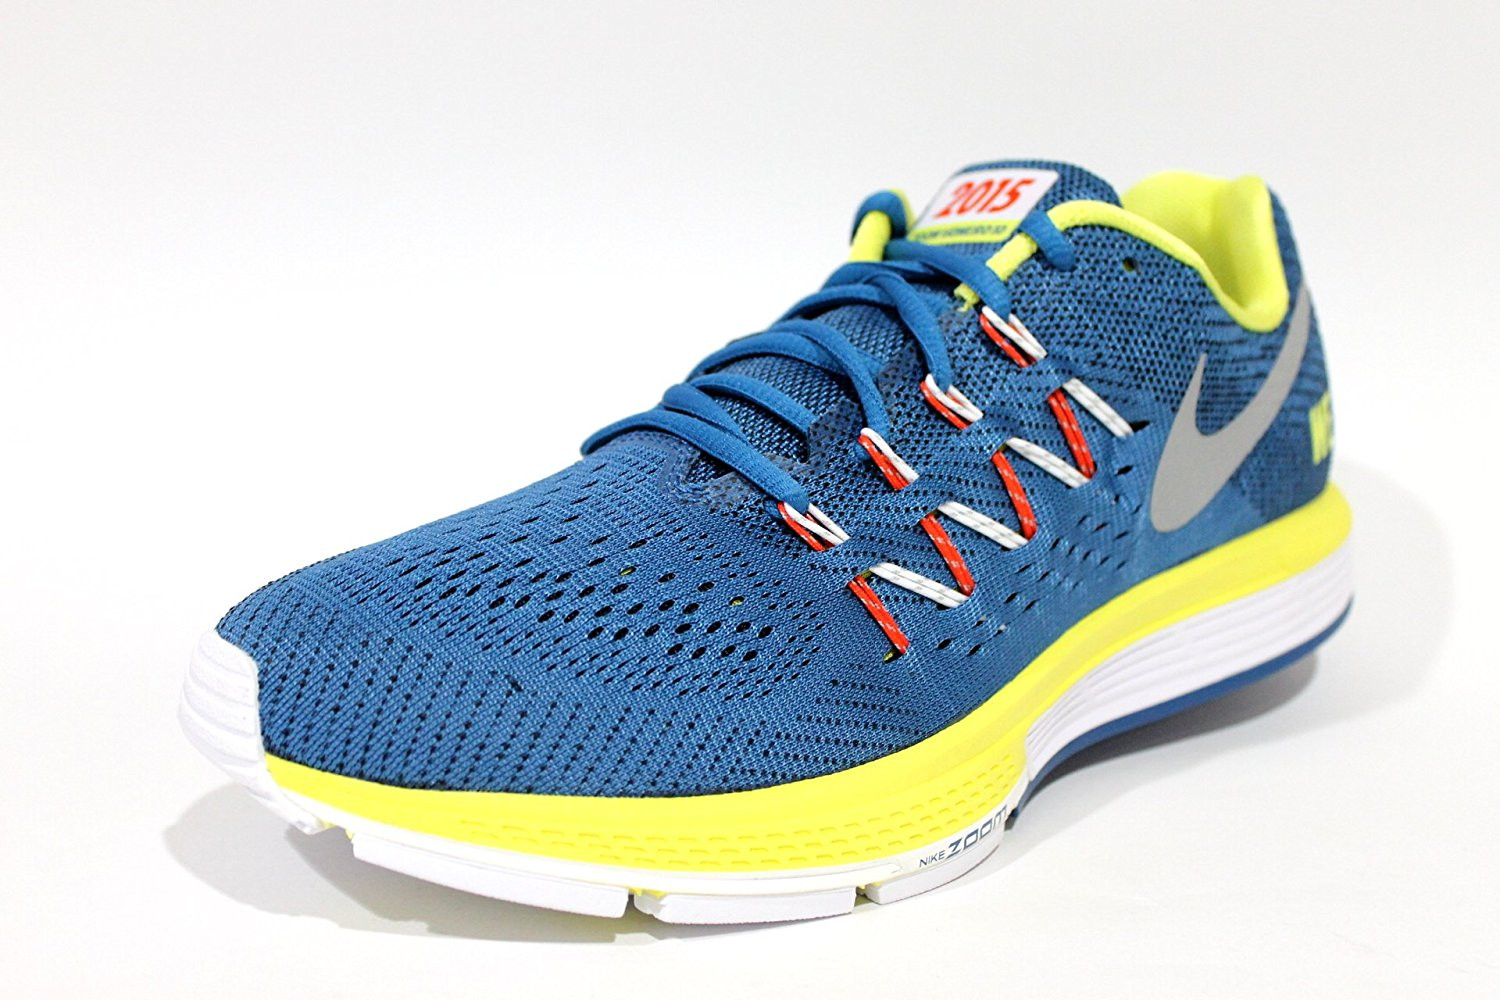 Nike Air Zoom Vomero 10 Bos Men's Running Shoes